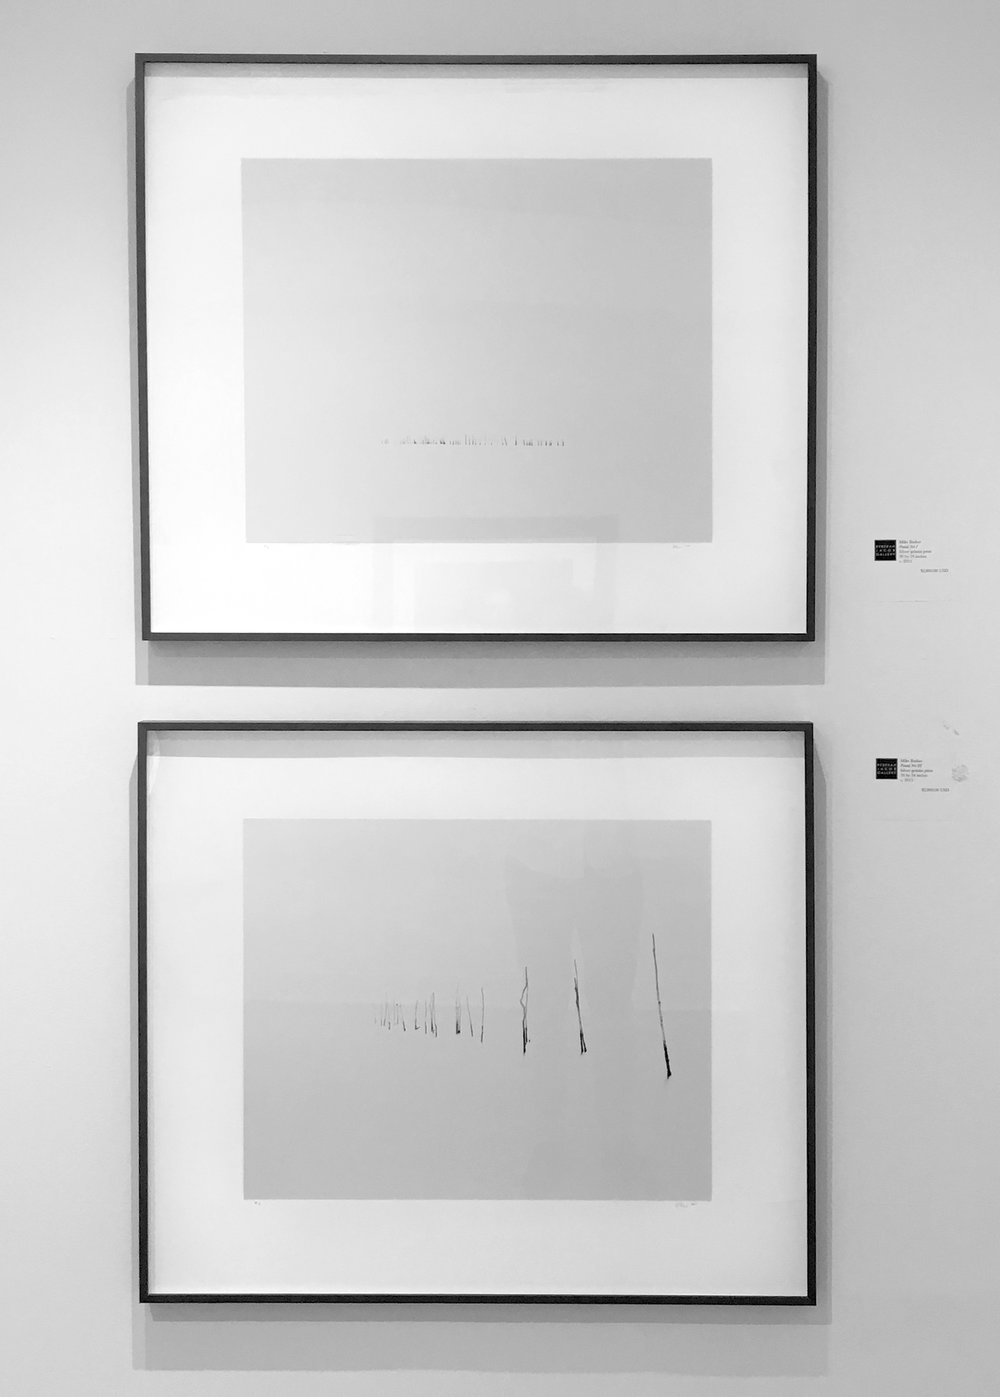 POUND NET I, 2015. 20x24 inch silver gelatin photograph (top) and POUND NET III, 2015. 20x24 inch silver gelatin photograph (bottom)